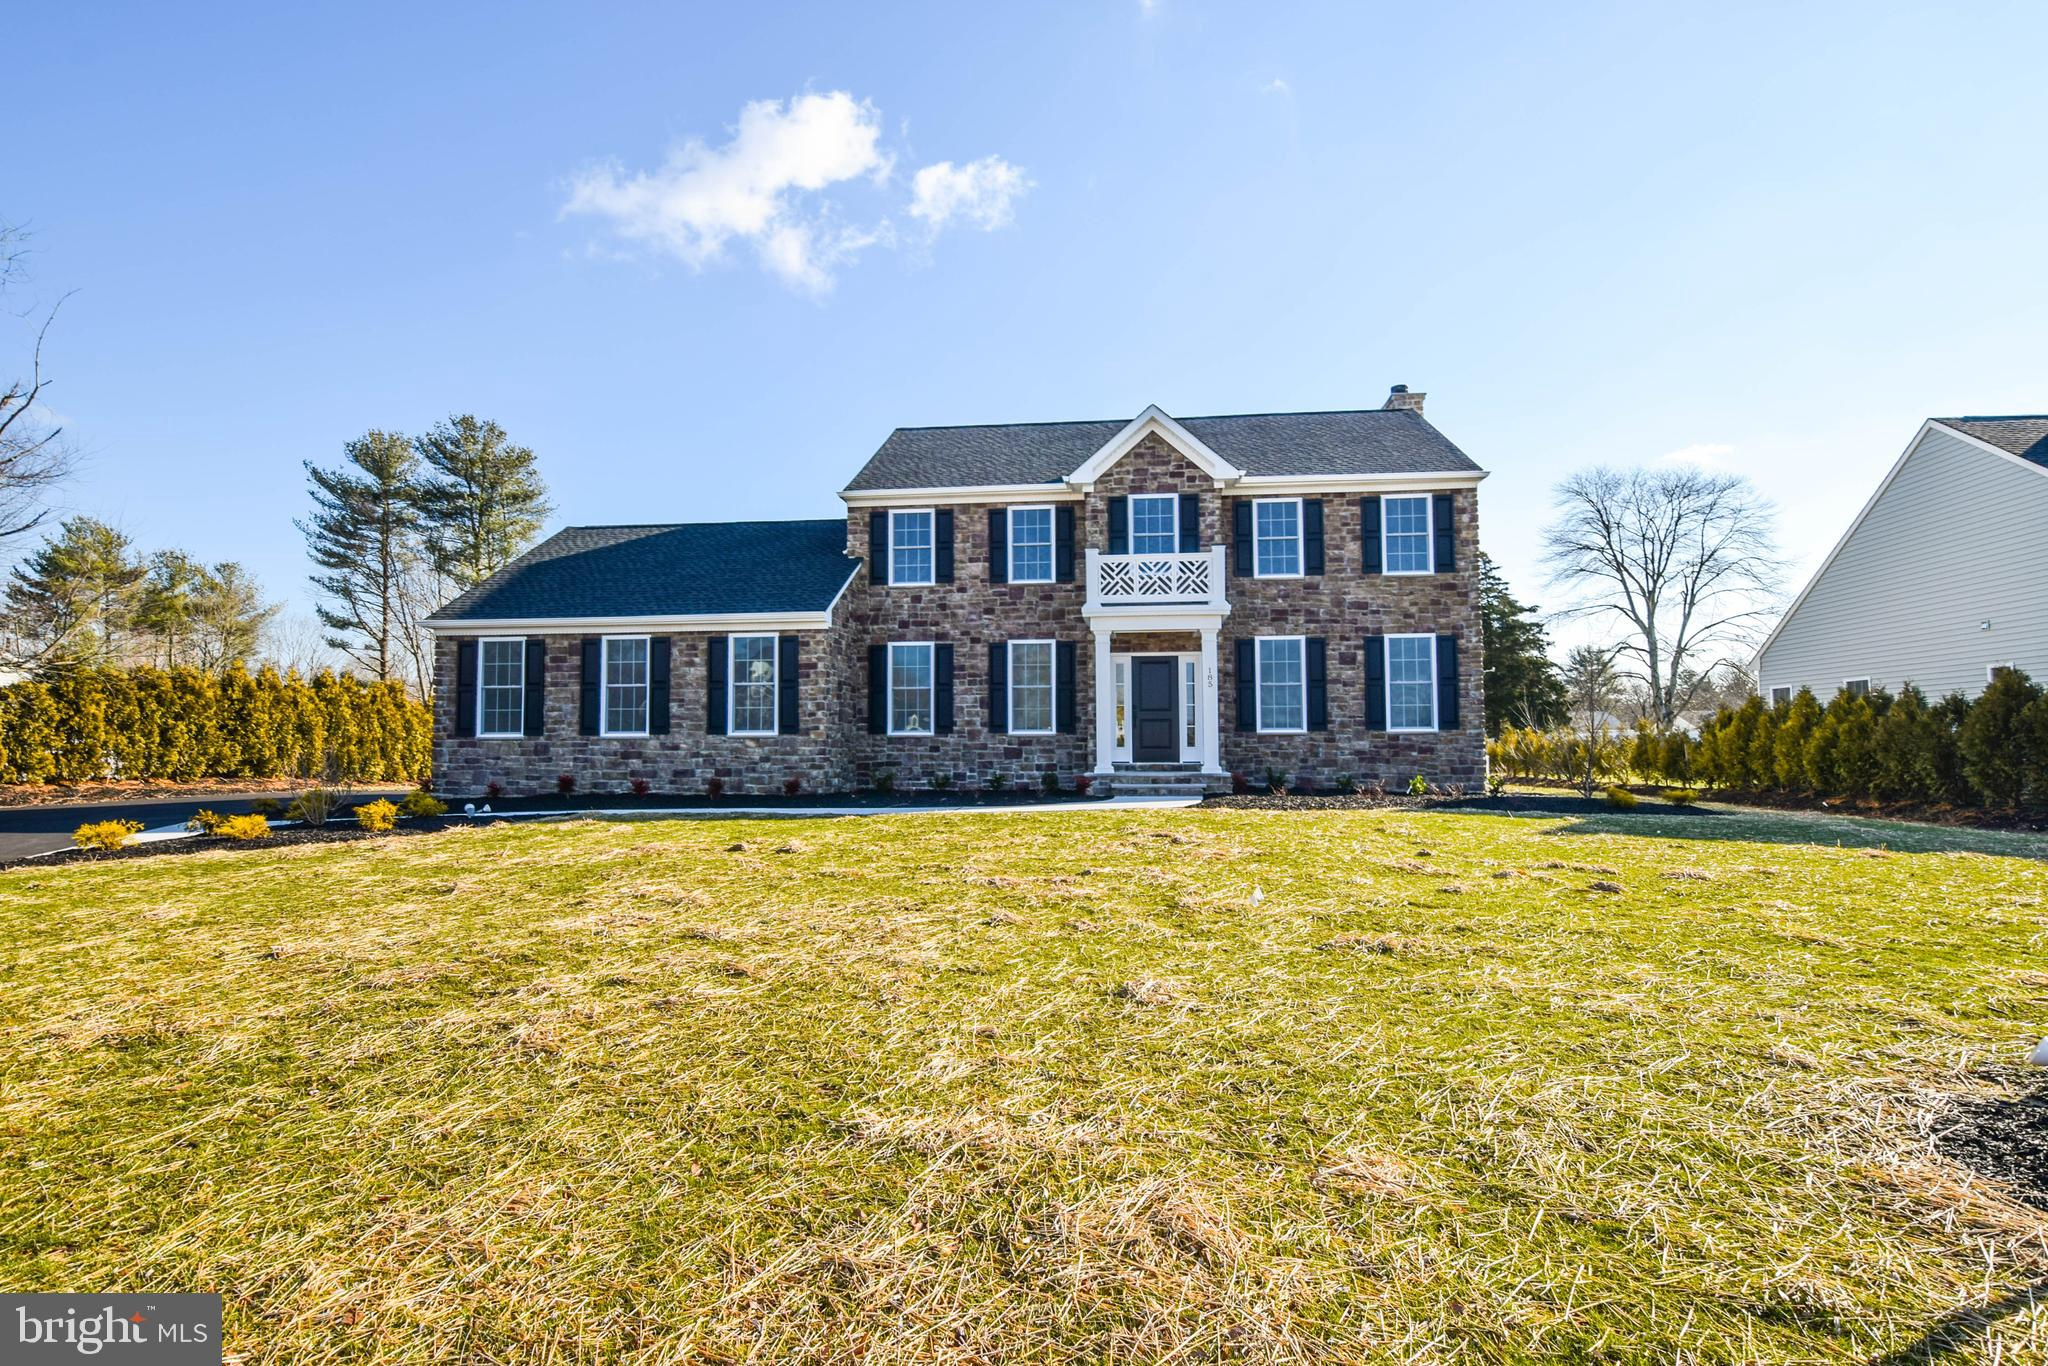 185 AVAS COURT, VINELAND, NJ 08361